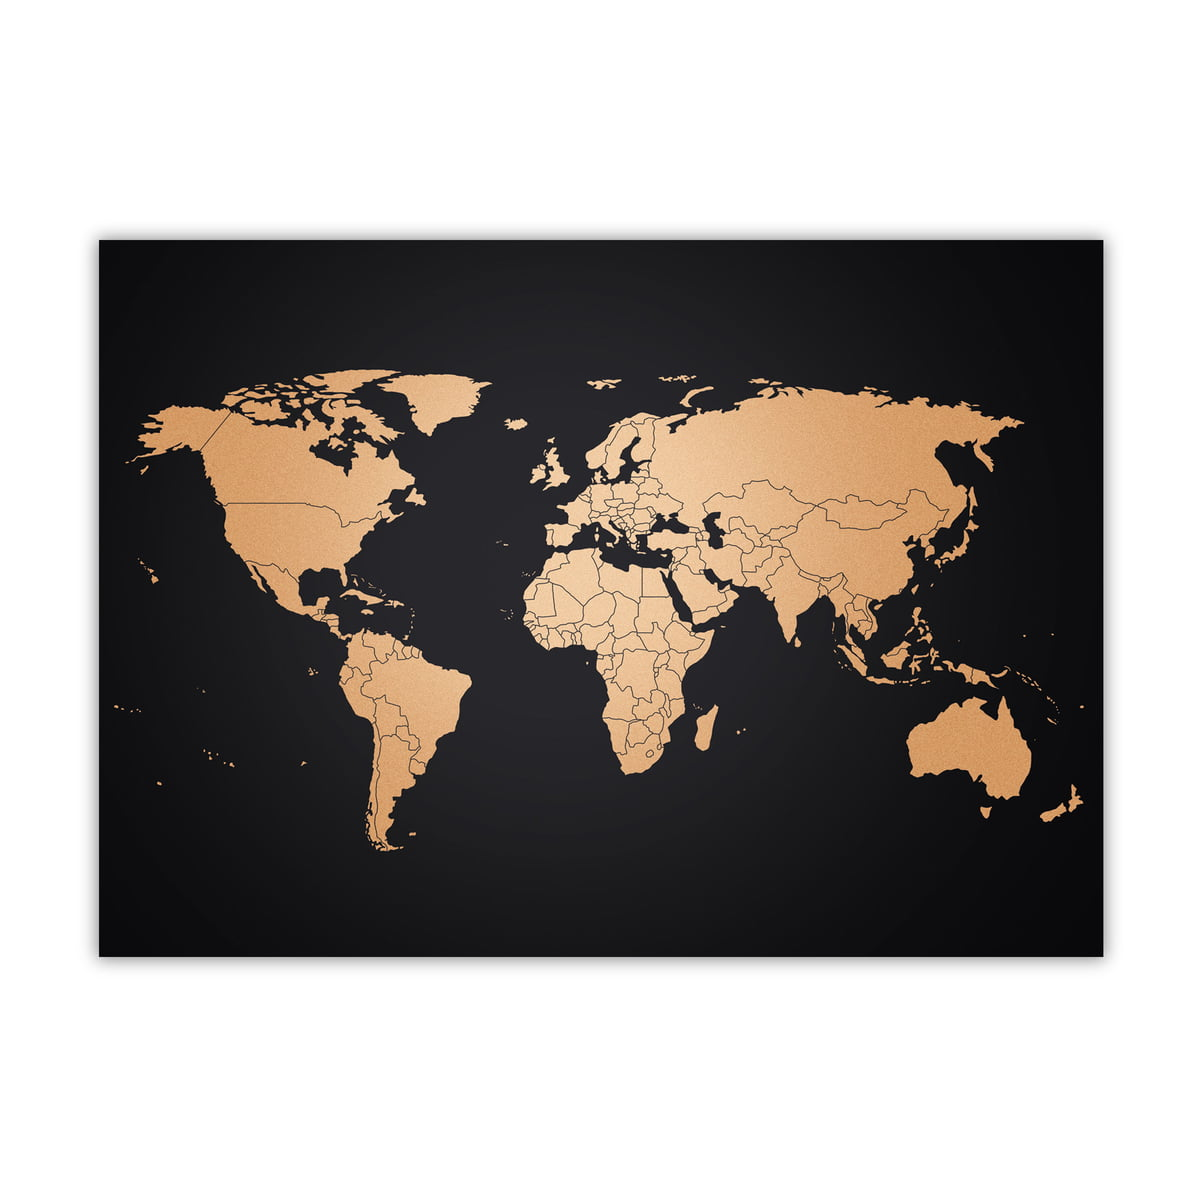 Copper Map World Map By Awesome Maps Shop - World map silhouette poster